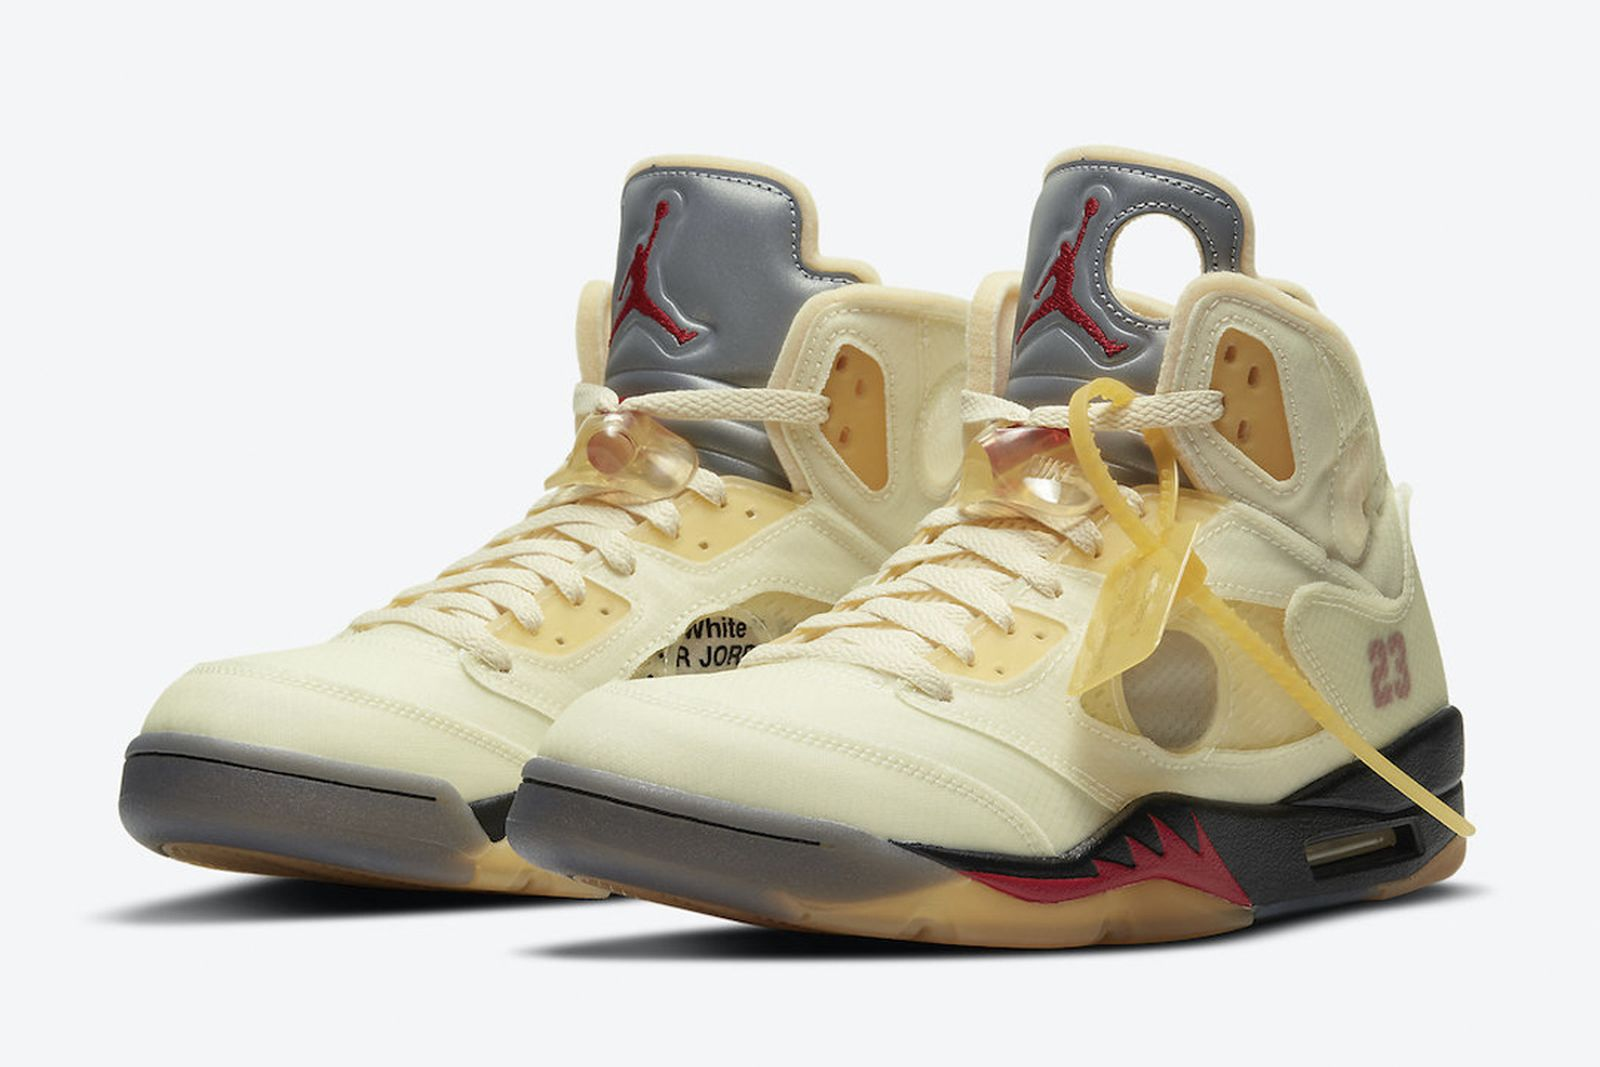 Off White X Air Jordan 5 Sail How Where To Buy Today